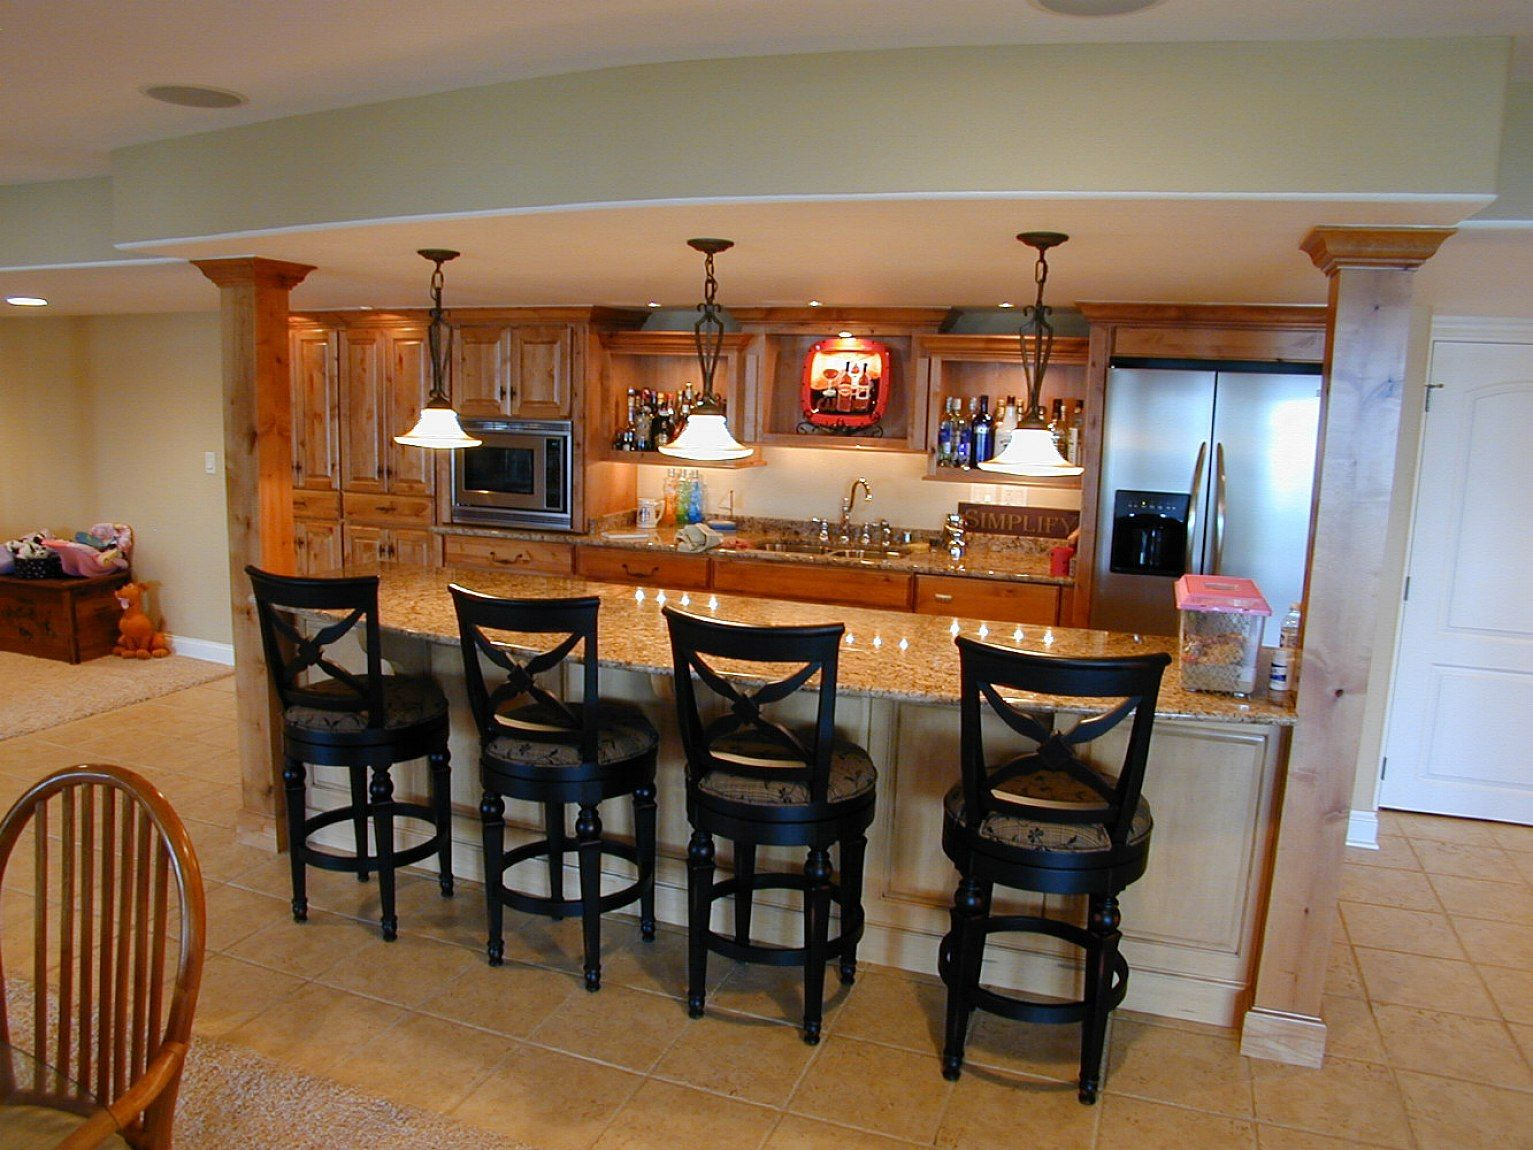 Finished Basement Ideas Basement Finishing With Mini Bar Design Basement Living Decor